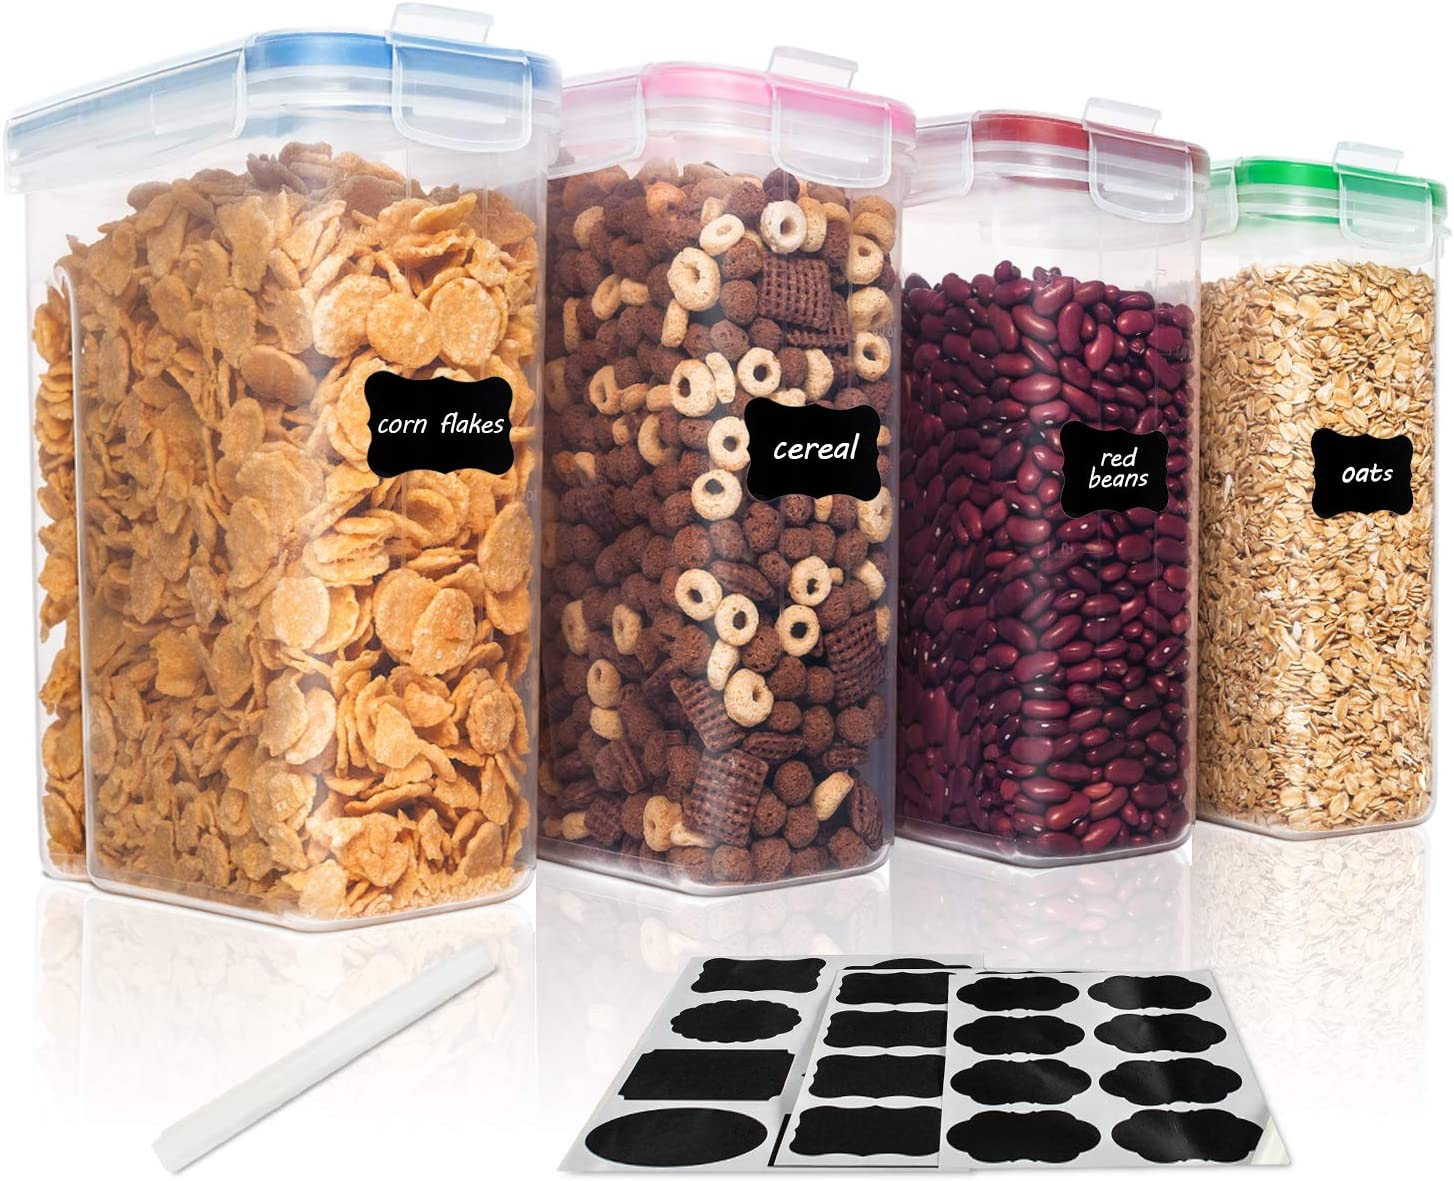 Vtopmart Cereal Storage Container Set, Small BPA Free Plastic Airtight Food Storage Containers 84.5 fl oz for Cereal, Snacks and Sugar, 4 Piece Set Cereal Dispensers with 24 Chalkboard Labels